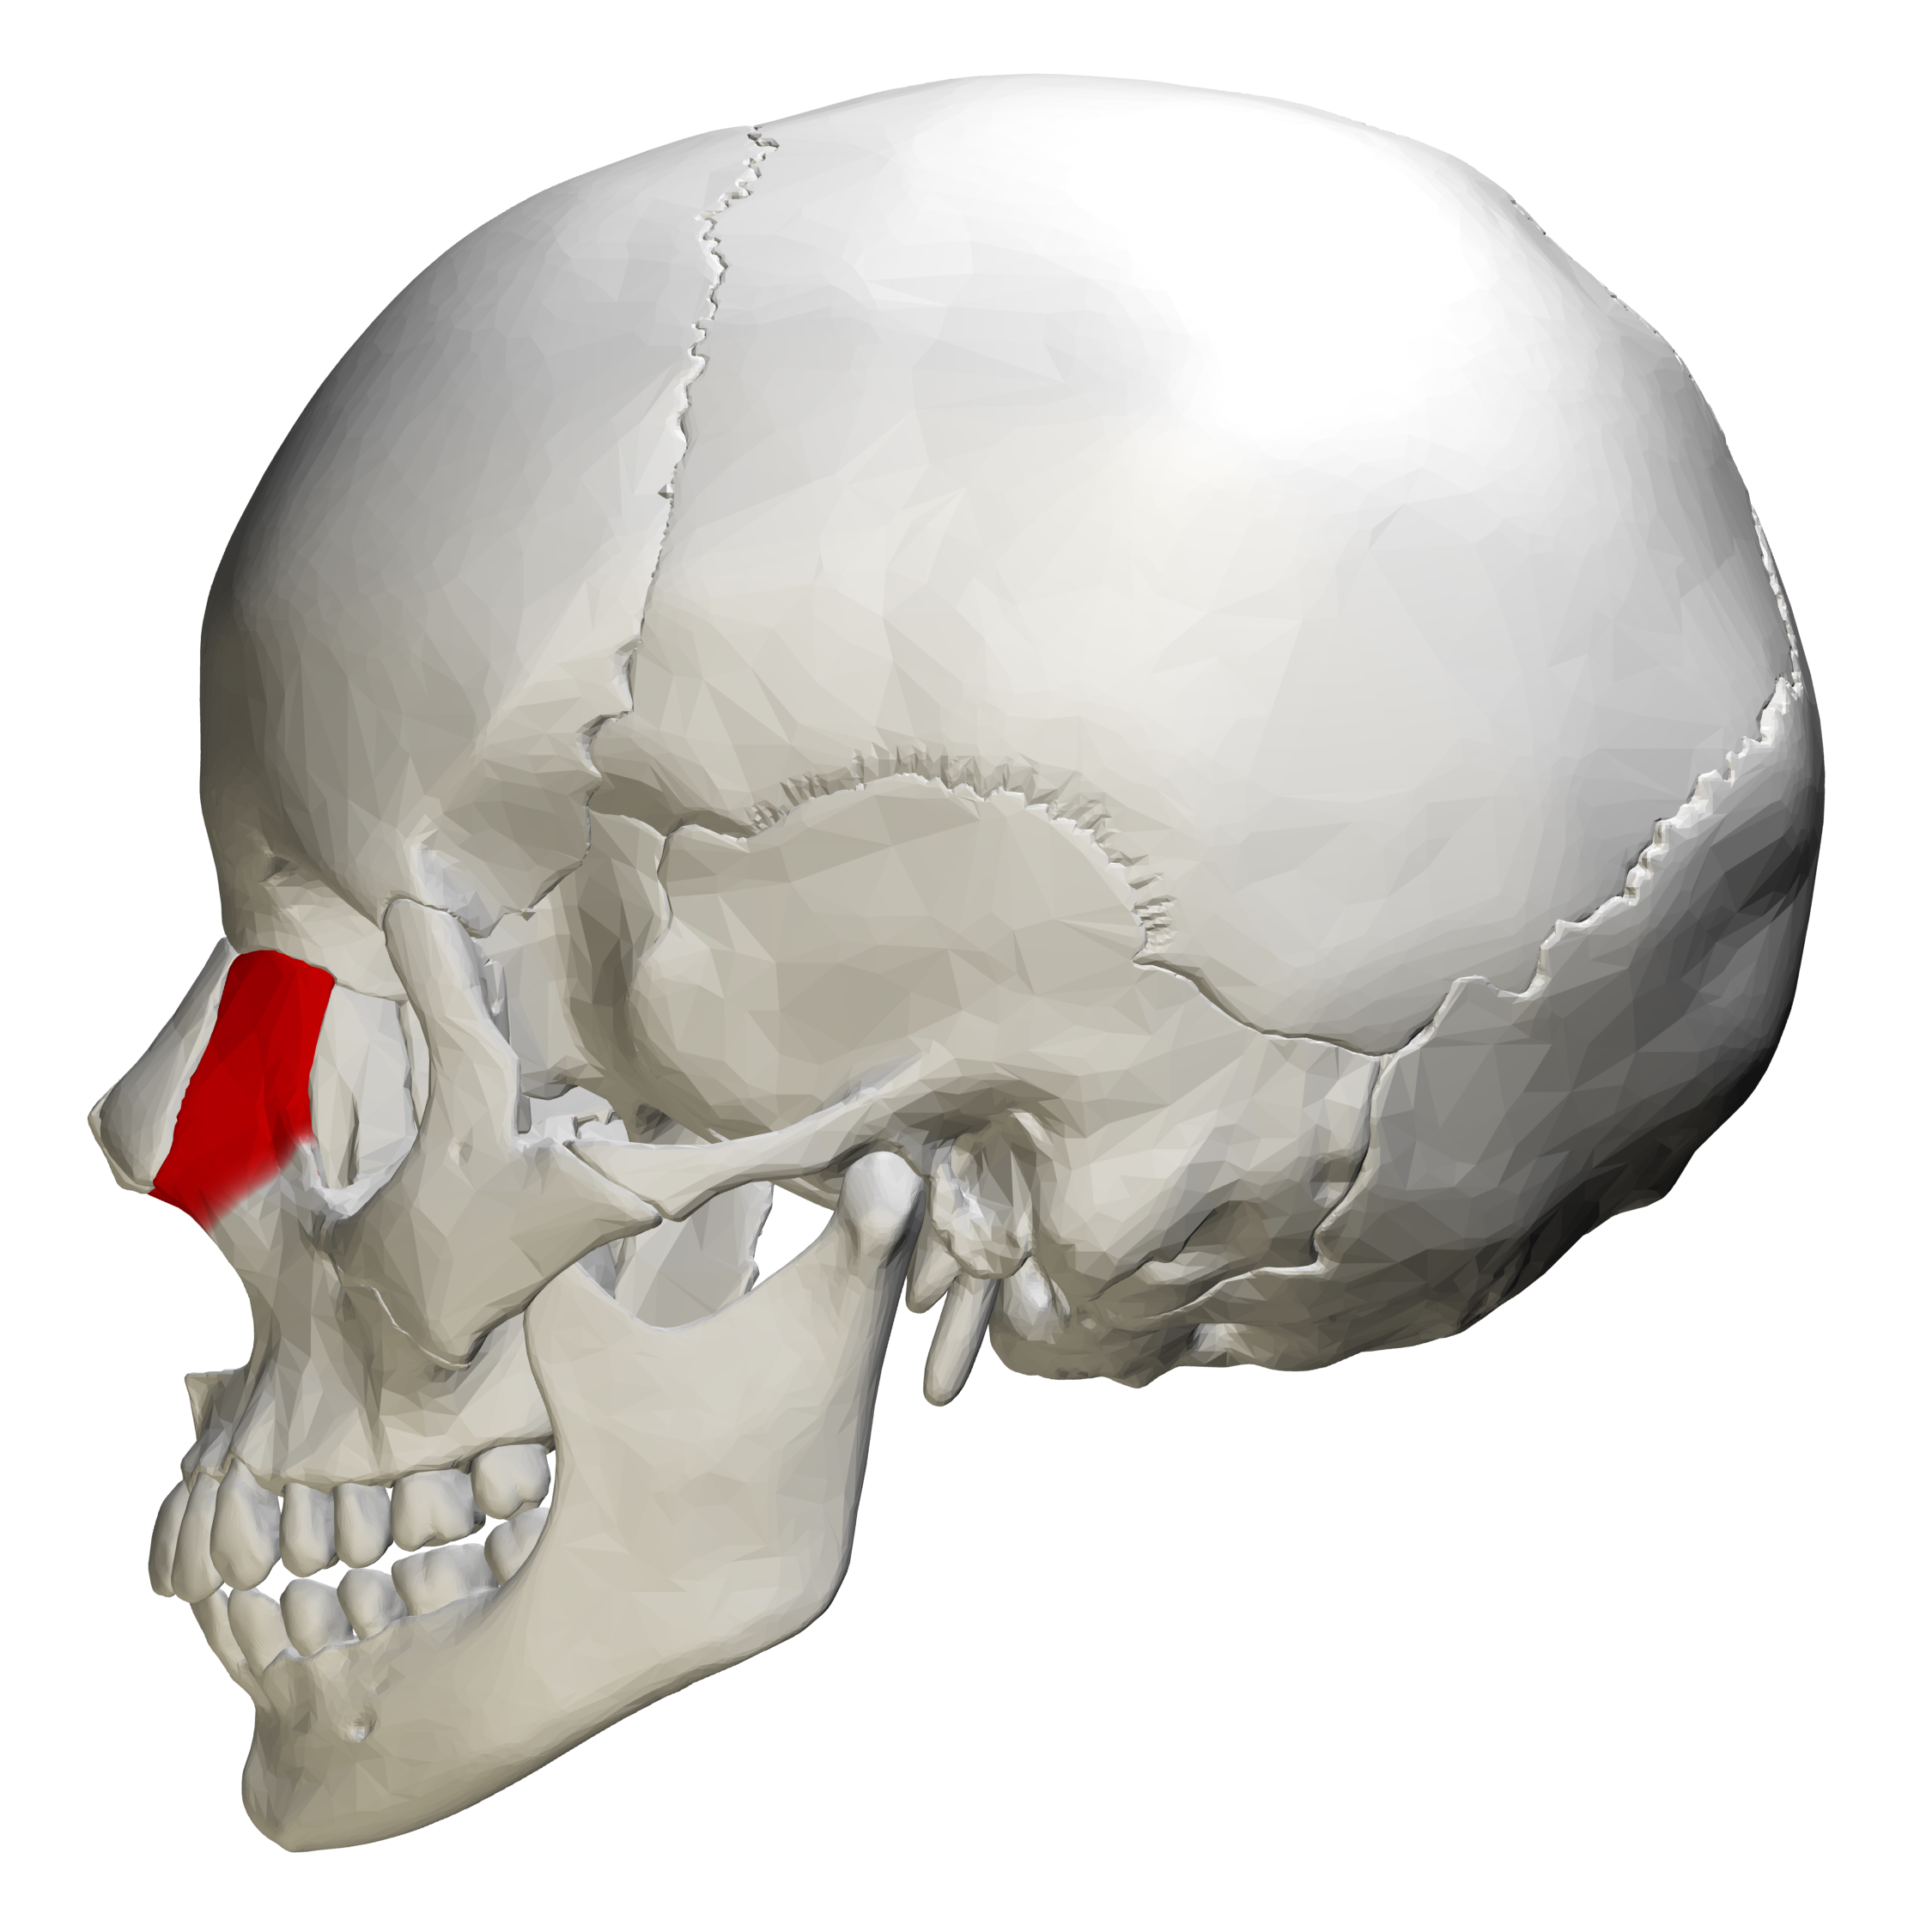 File:Frontal process of maxilla - skull - lateral view.png - Wikimedia Commons